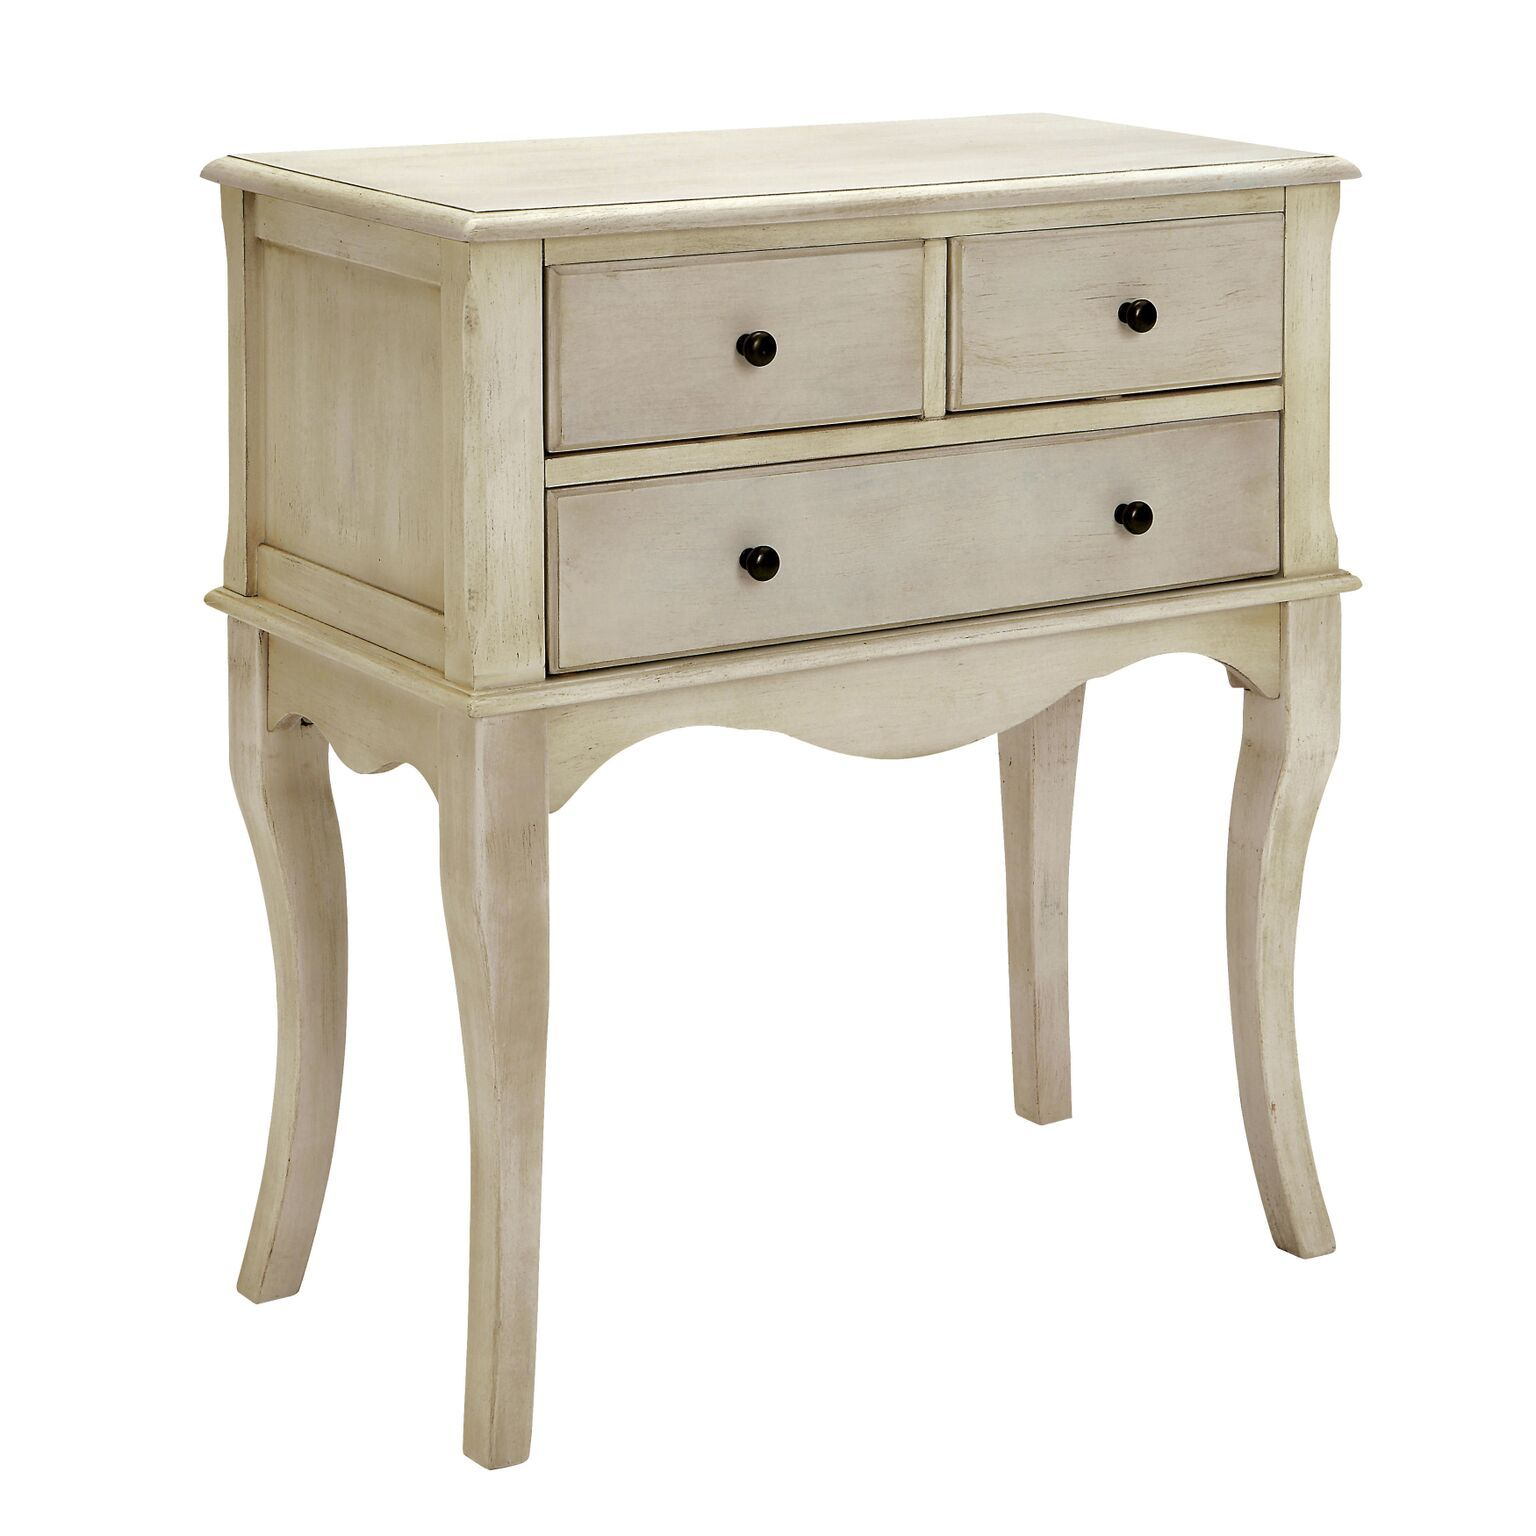 Gea 3-Drawer Chest Antique White Furniture Enitial Lab